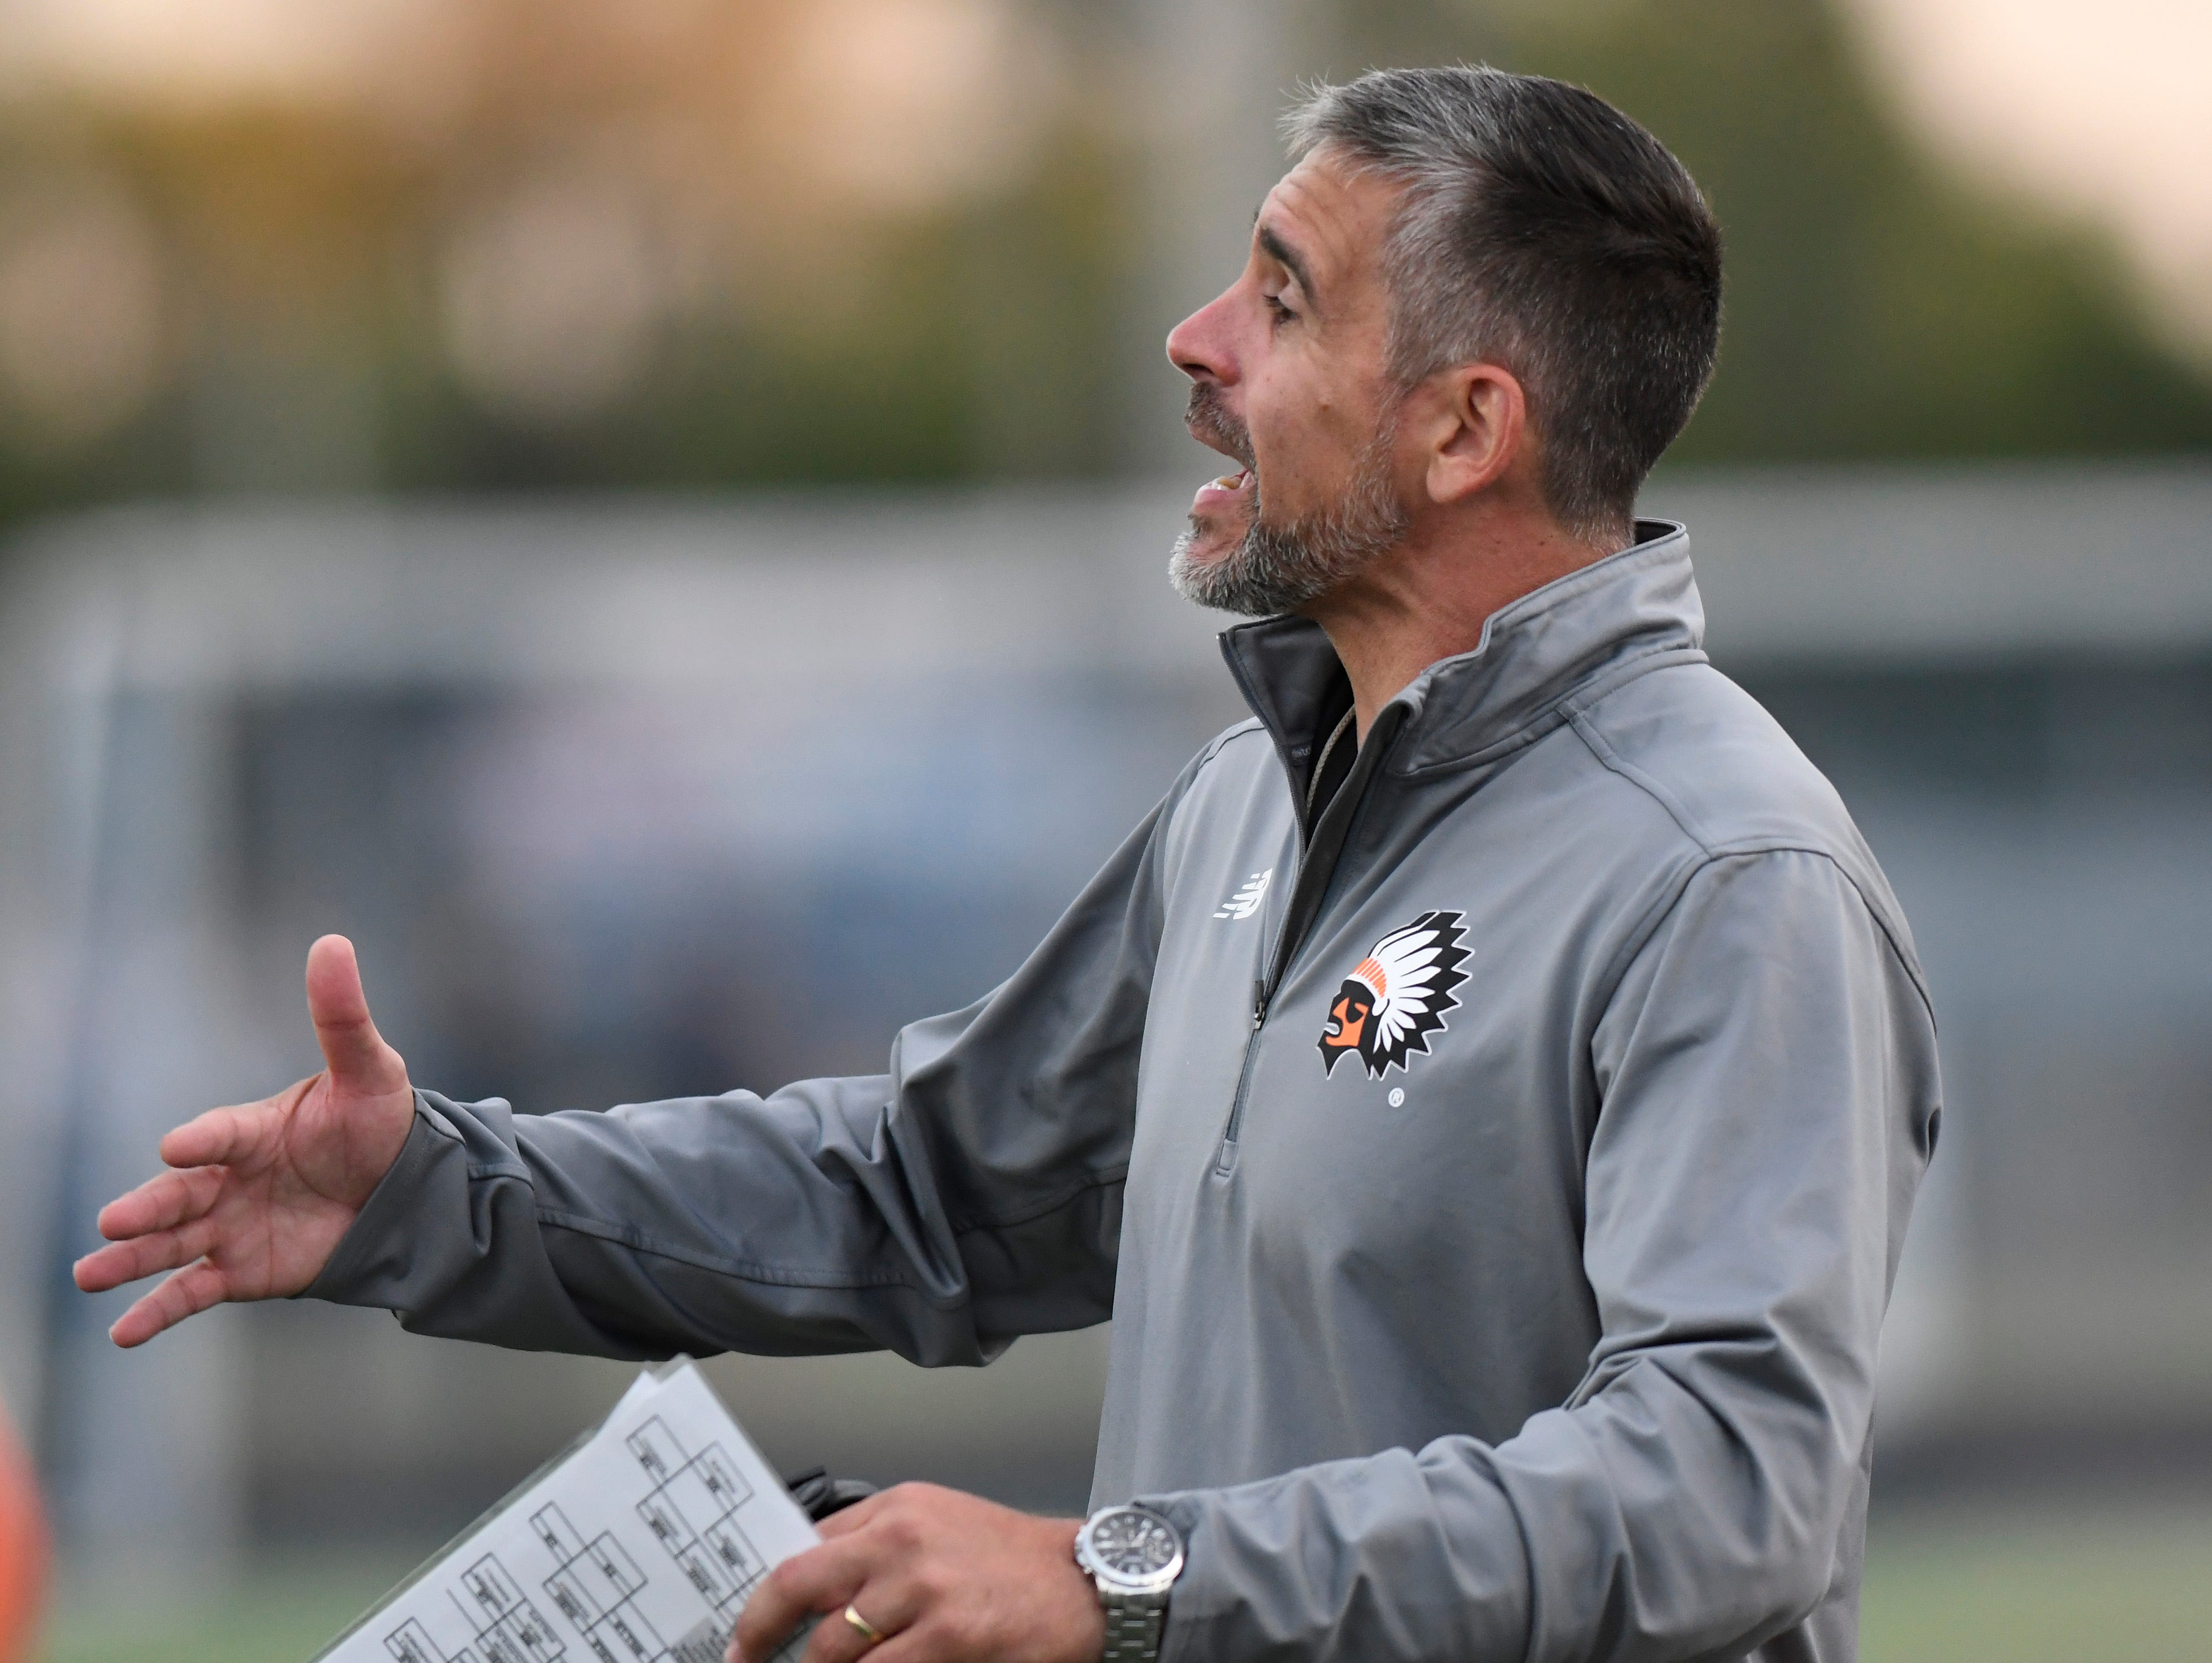 Birmingham Brother Rice head coach Adam Korzeniewski yells instructions to his team as they played against Detroit Catholic Central in the first quarter, Saturday, Sept. 22, 2018 at Hurley Field in Berkley, Mich.  Catholic Central defeated Brother Rice, 21-0.  (Jose Juarez/Hometown Life)